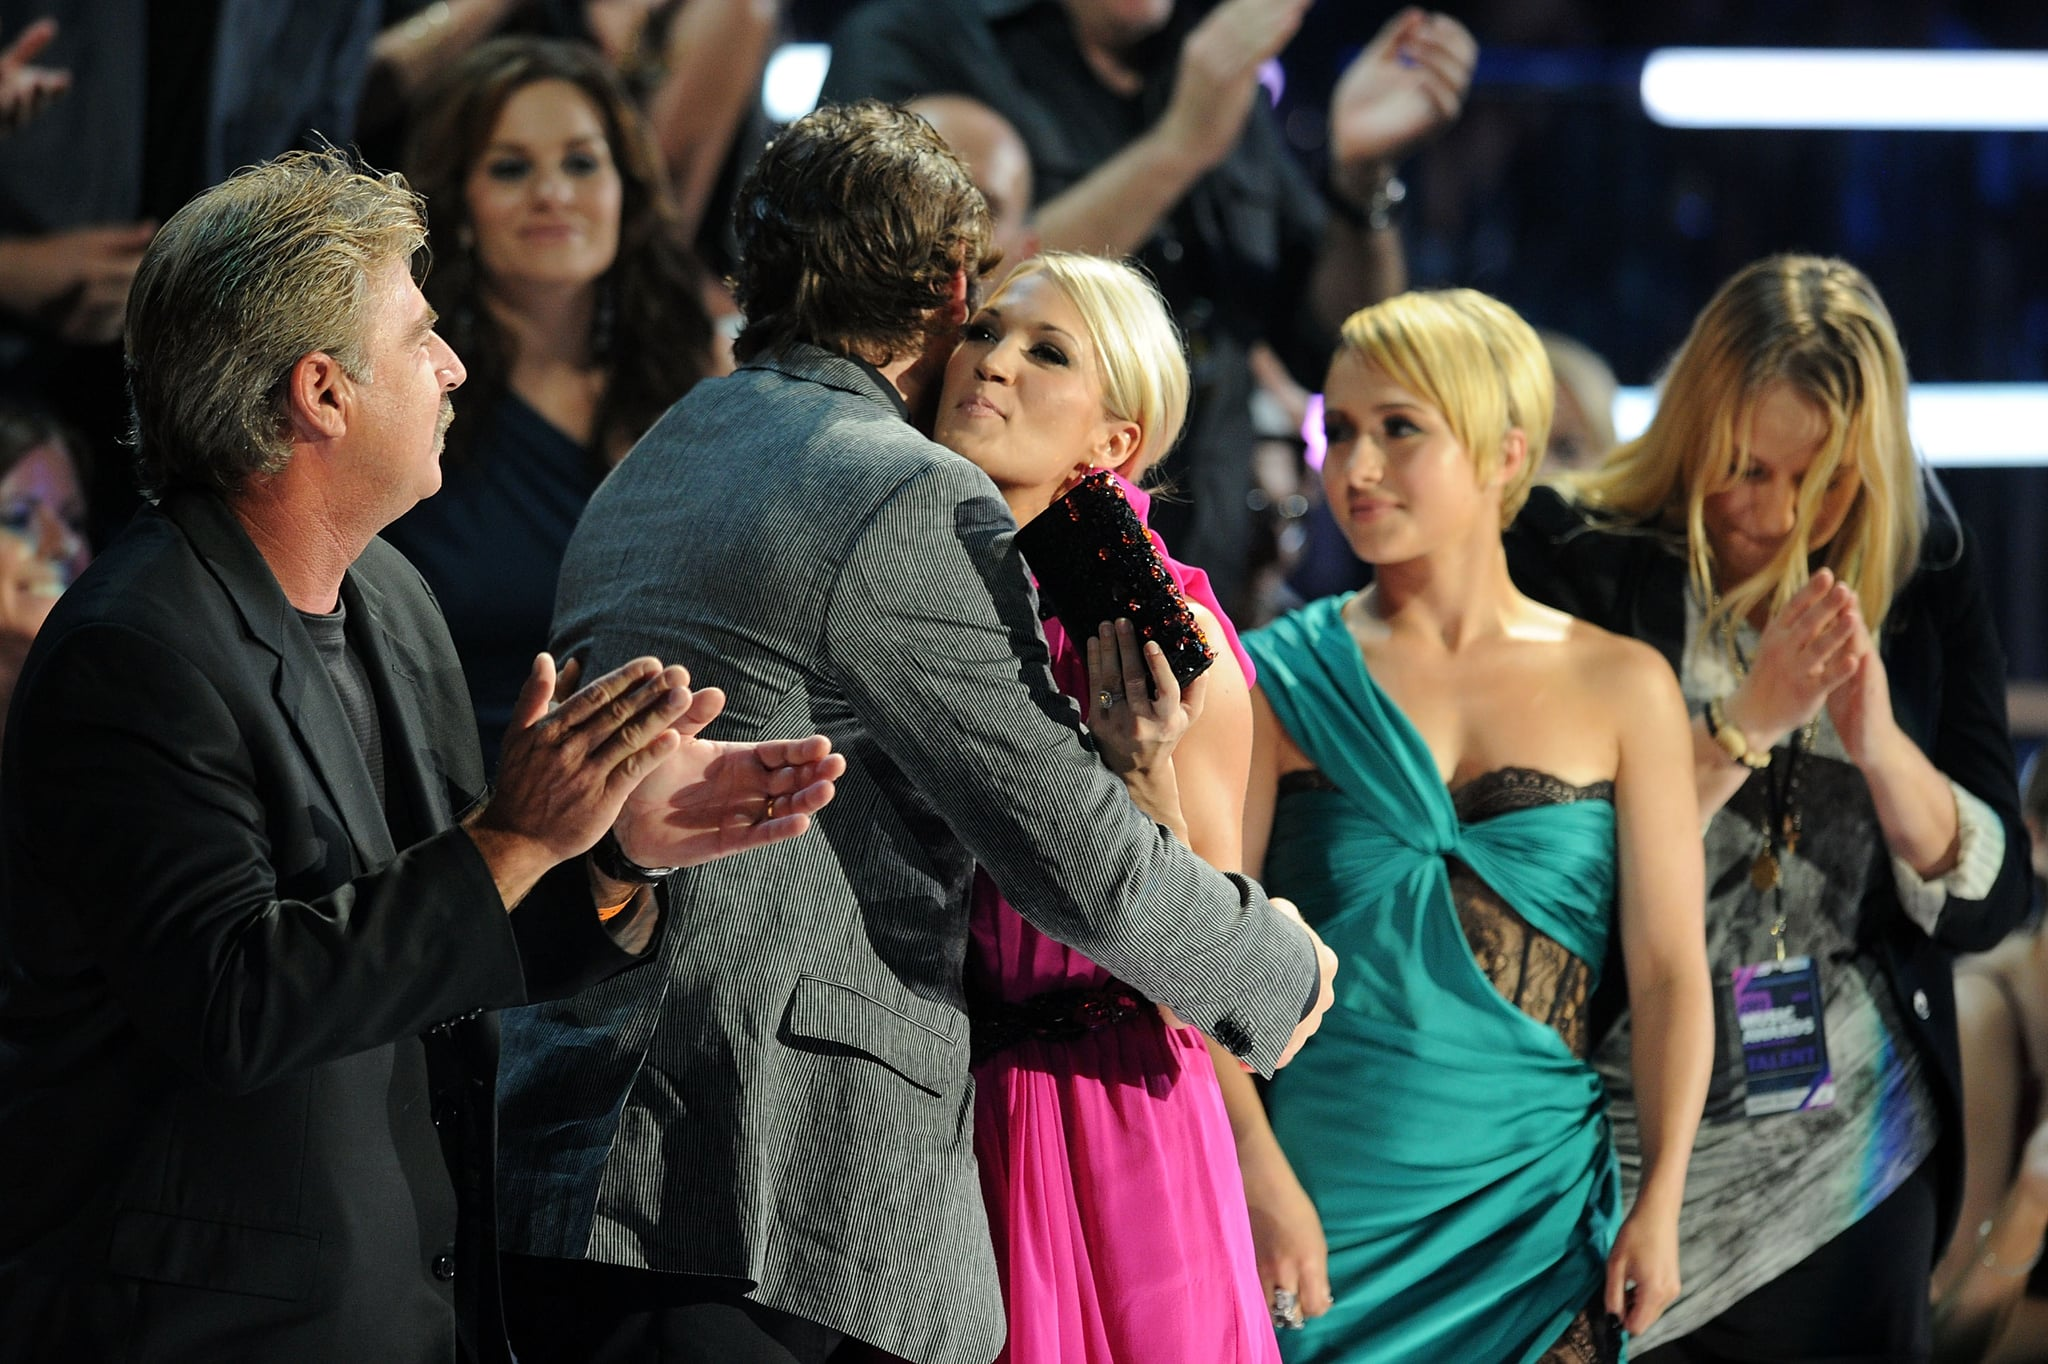 PopsugarCelebrityTaylor SwiftPictures of Taylor Swift, Carrie Underwood, Nicole Kidman, John Mayer at 2010 CMT Music Awards 2010-06-10 06:00:00Taylor, Carrie, Sheryl, and Hayden Meet John Mayer's Ab Situation at the CMT Awards! June 10, 2010 by Celebrity1 SharesBlond hair ruled on the red carpet at last night's CMT Music Awards in Nashville. Taylor Swift mixed things up with a slightly edgier look than we're used to from her, straightening out those trademark curls. Carrie Underwood stood out in pink as both country princesses headed in to see what would come of their three nominations apiece. Brand-new mom of twoSheryl Crow displayed her rocking legs, which had an especially nice glow after her recent bikinis Bahamas vacation with her son Wyatt. Faith Hill was glamorous as ever while Hayden Panettiere showed some skin in her lacy cutout dress.Kid Rock played host for the award show and kept things light with a Kanye West joke to kick things off. Keith Urban, Miranda Lambert, and Carrie Underwood were the big - 웹